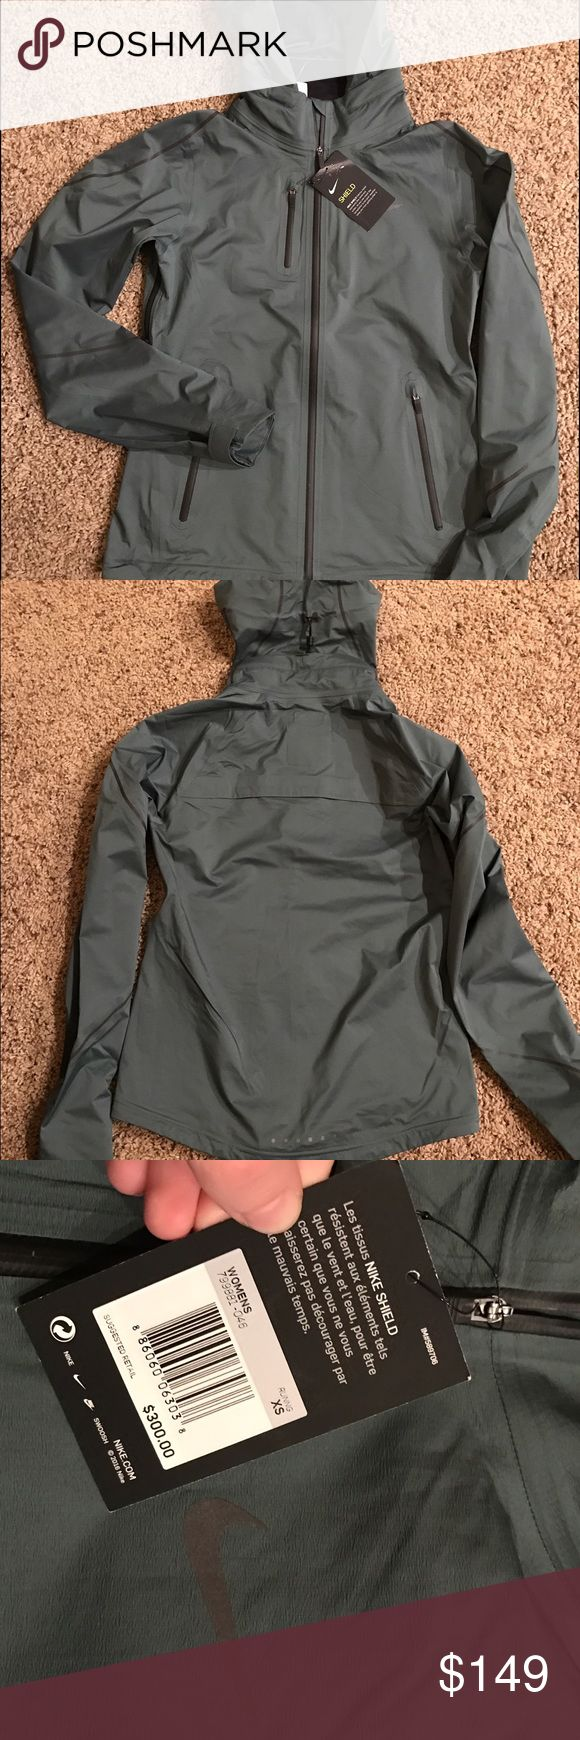 NWT Nike Shield Waterproof Jacket Blue/Grey Nike Shield Jacket. NWT.  XS. Amazing workout piece. REASONABLE OFFER ACCEPTED Nike Jackets & Coats